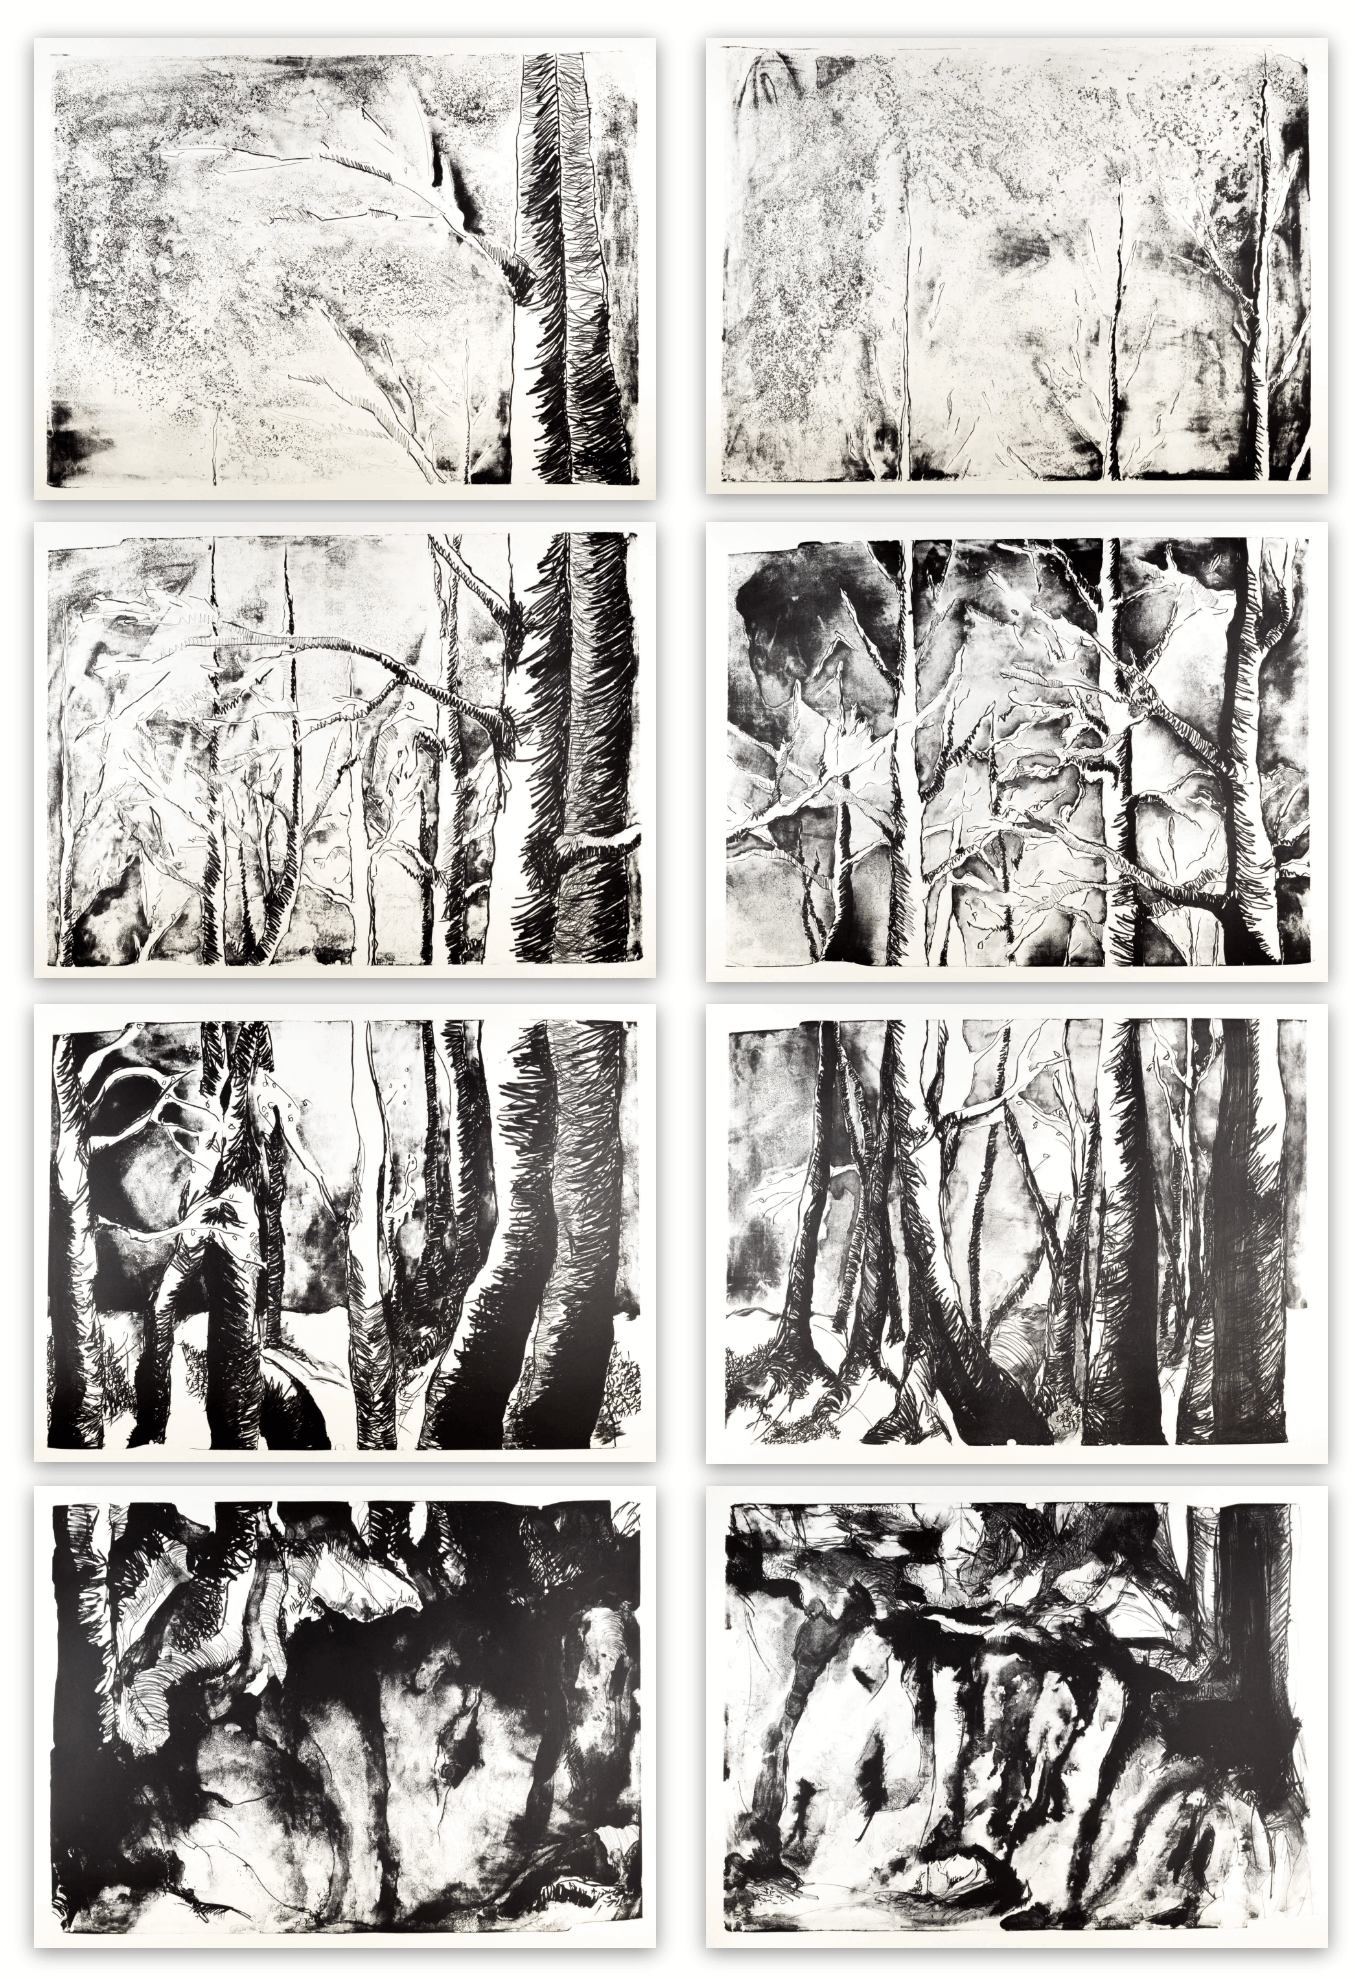 Katharina Albers, Wald, 2015 Lithographie Unikat (8 Steine je 70×100 cm)